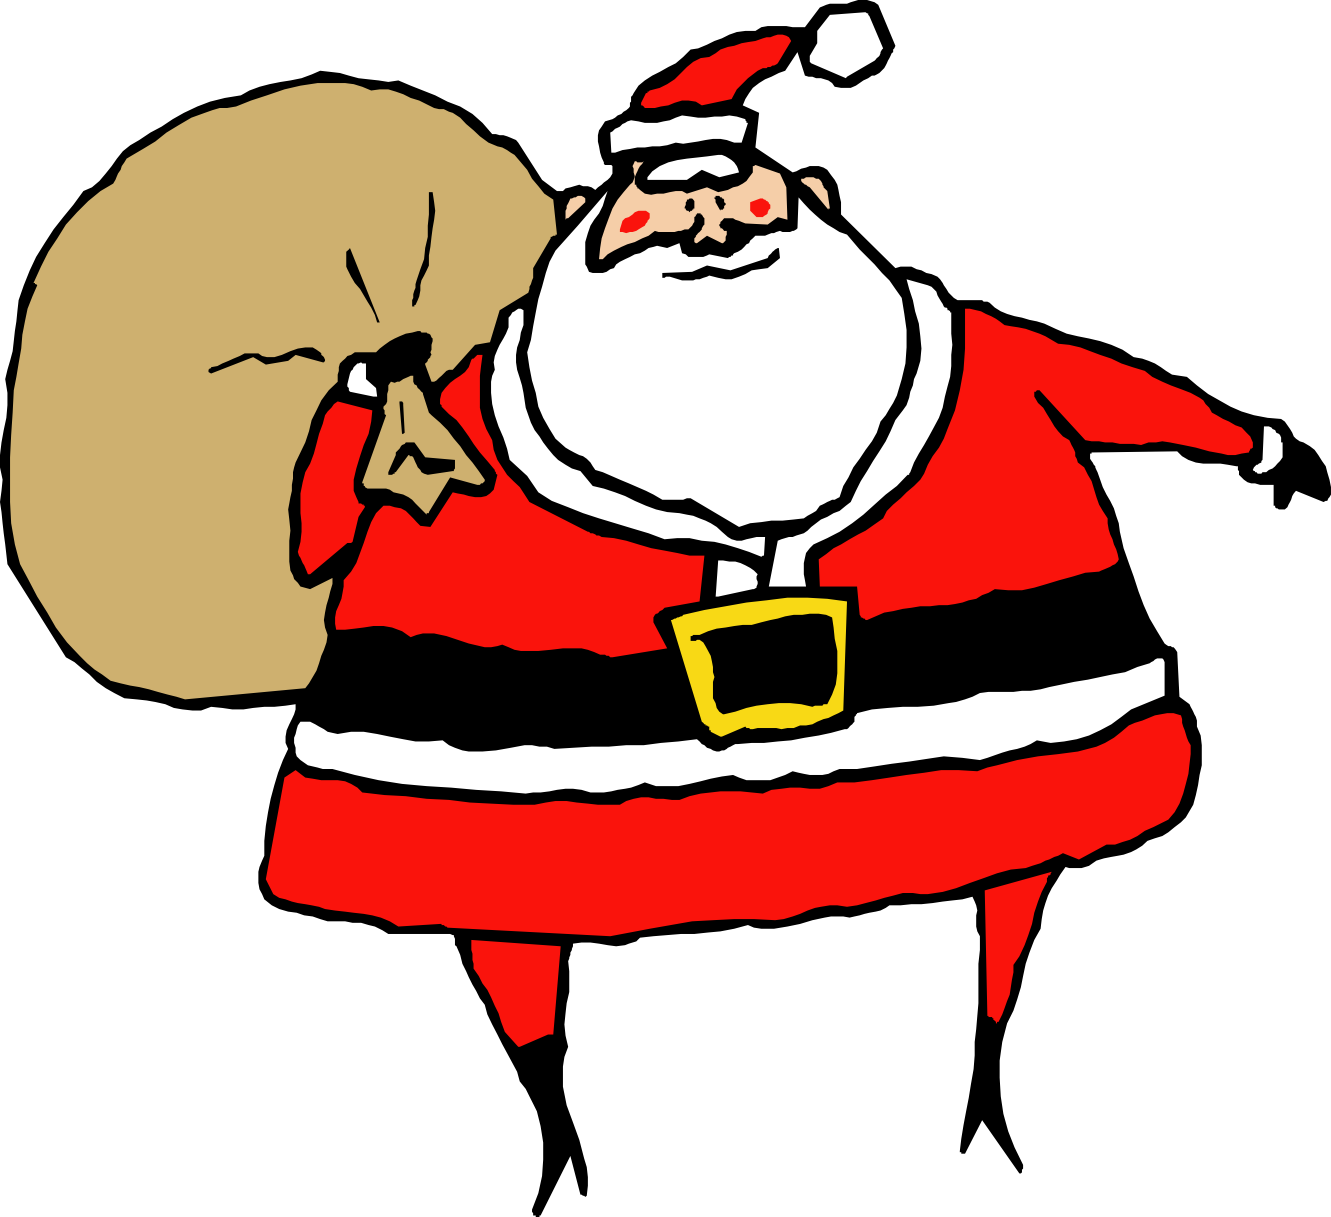 Free Animated Santa Claus Clipart, Download Free Clip Art.